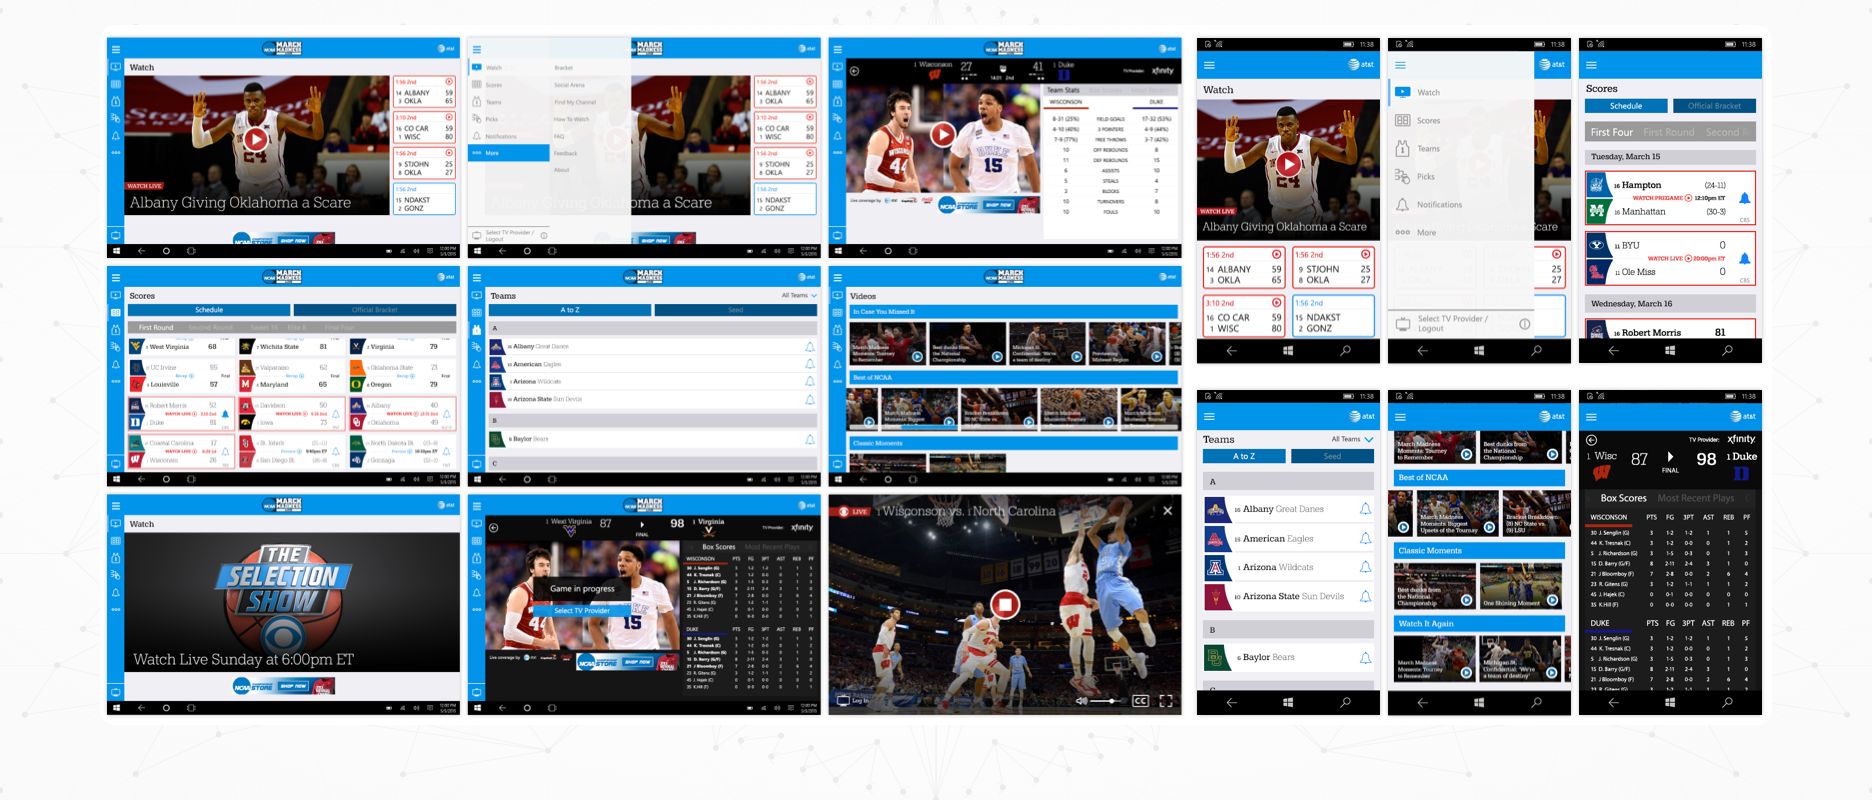 March Madness Live- Case Study Image - Designs